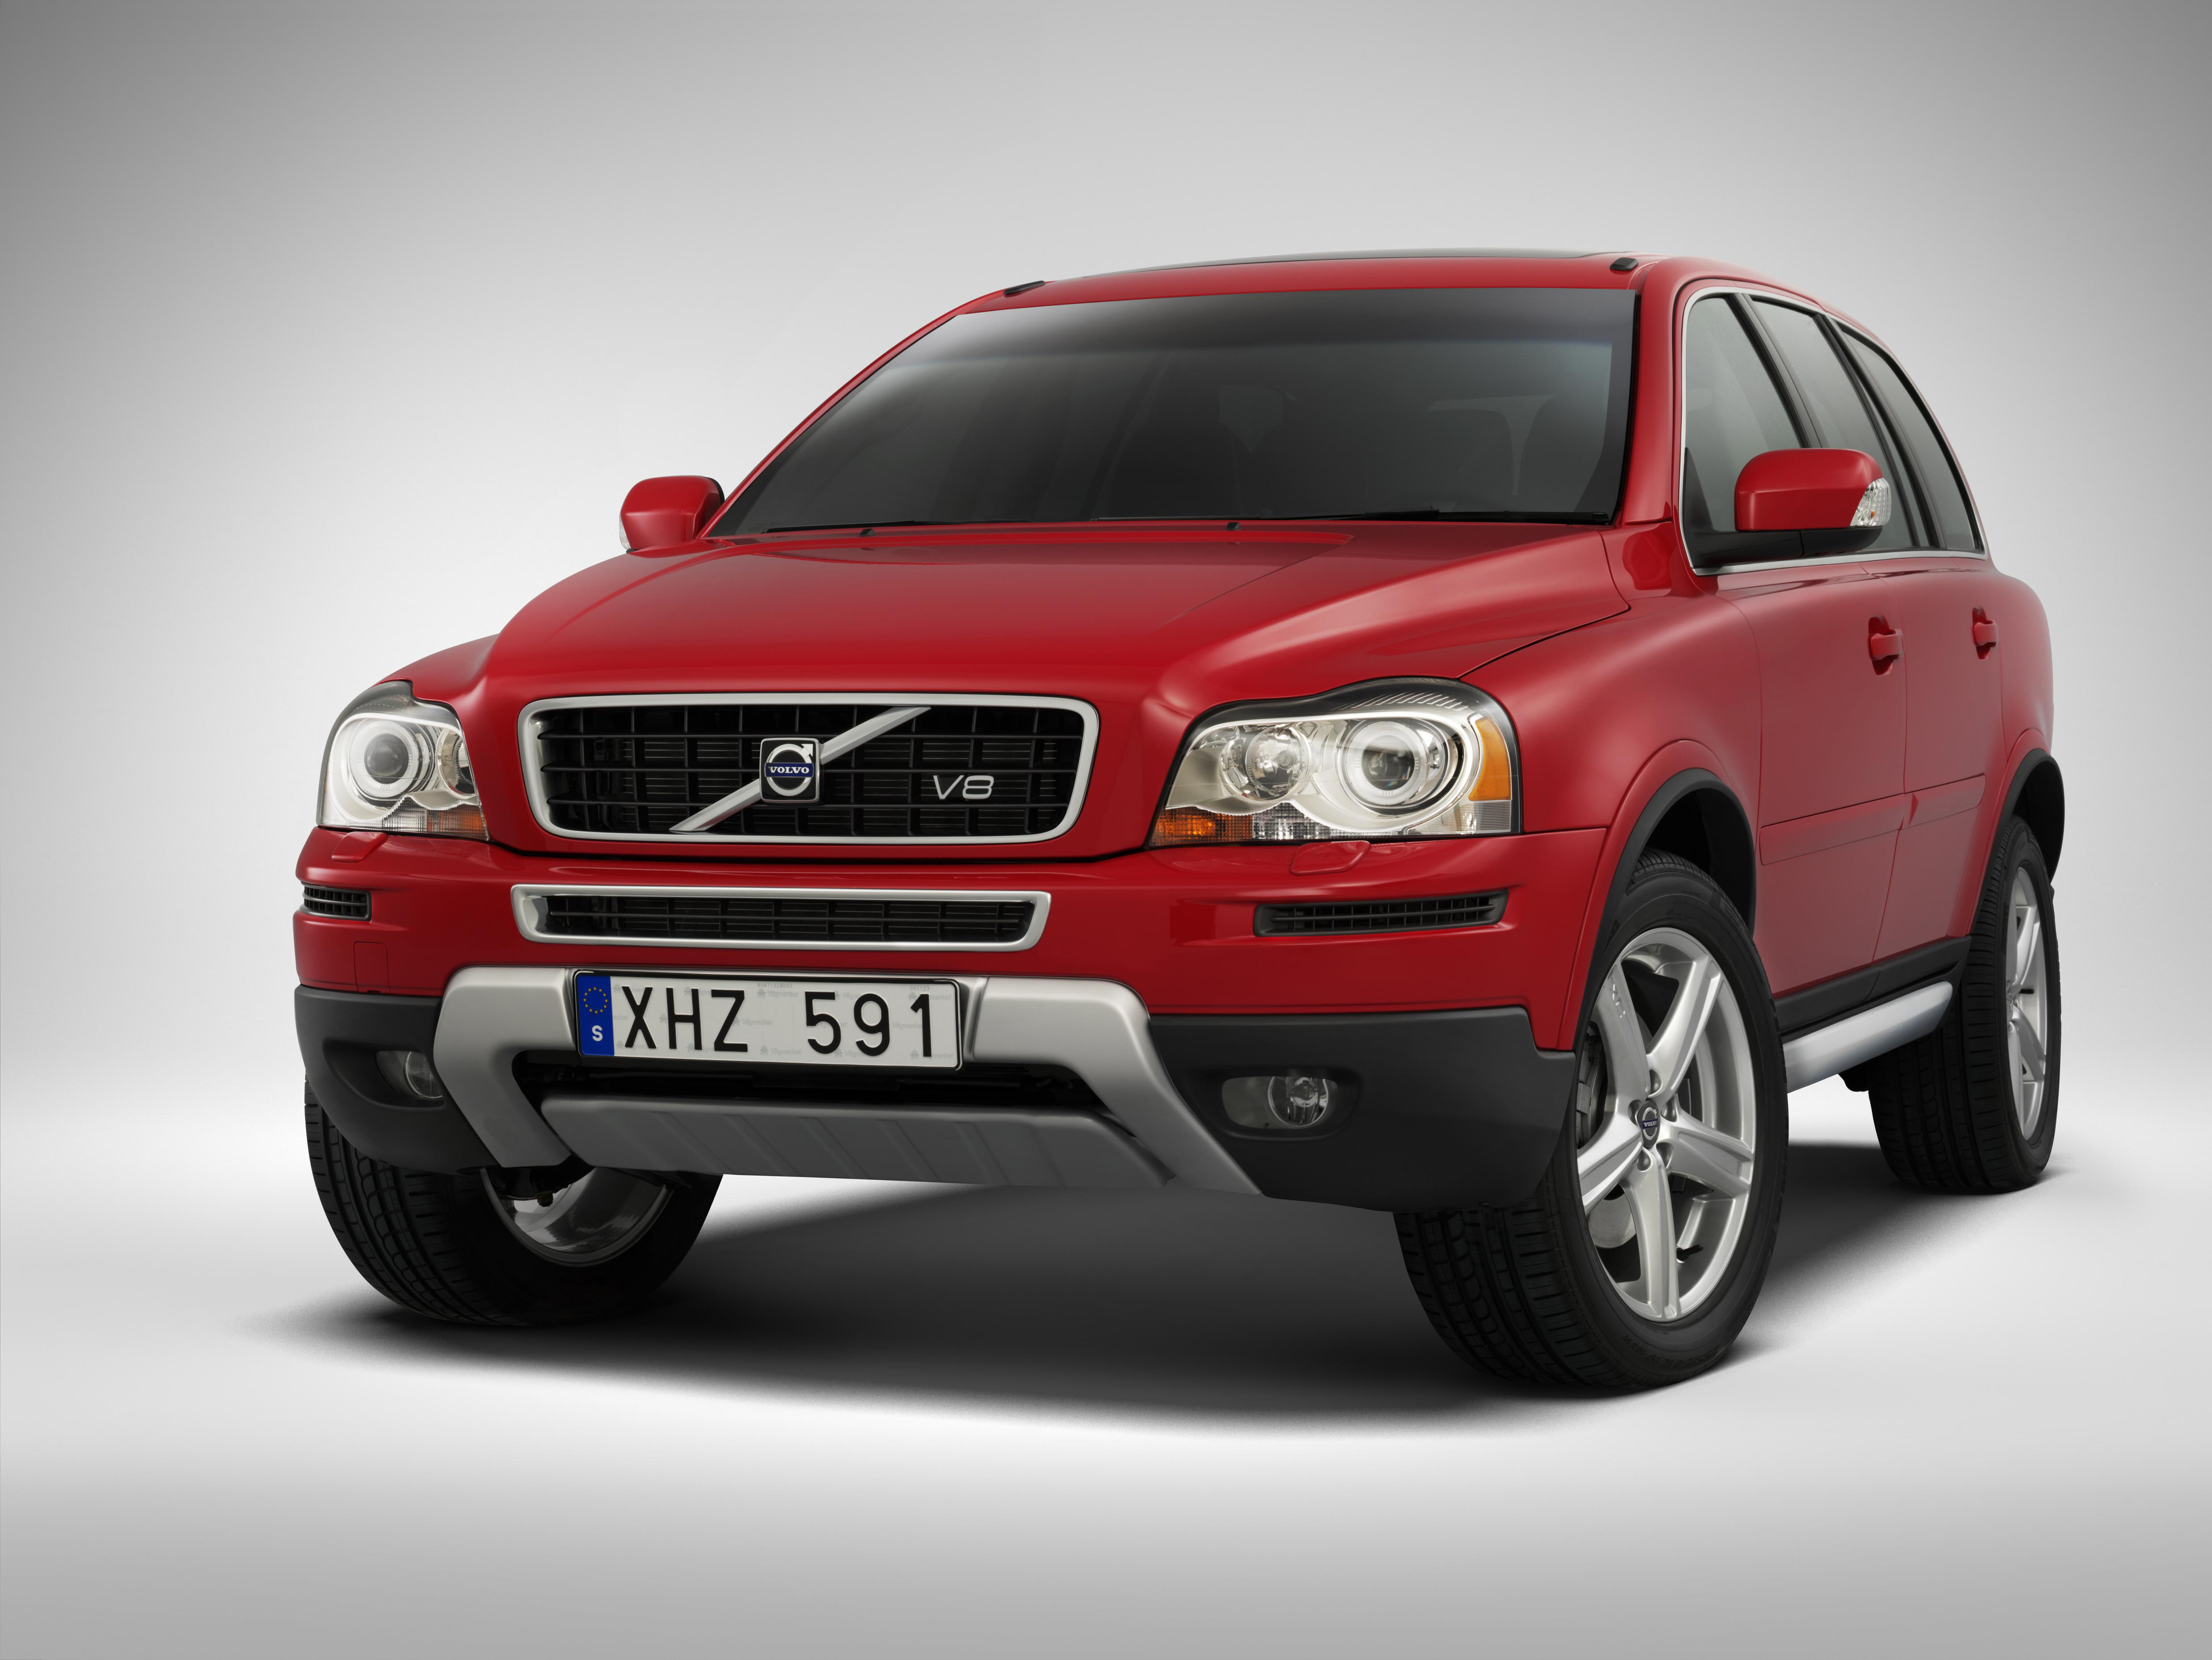 2007 Volvo XC90 V8 Sport Pictures, Photos, Wallpapers. | Top Speed